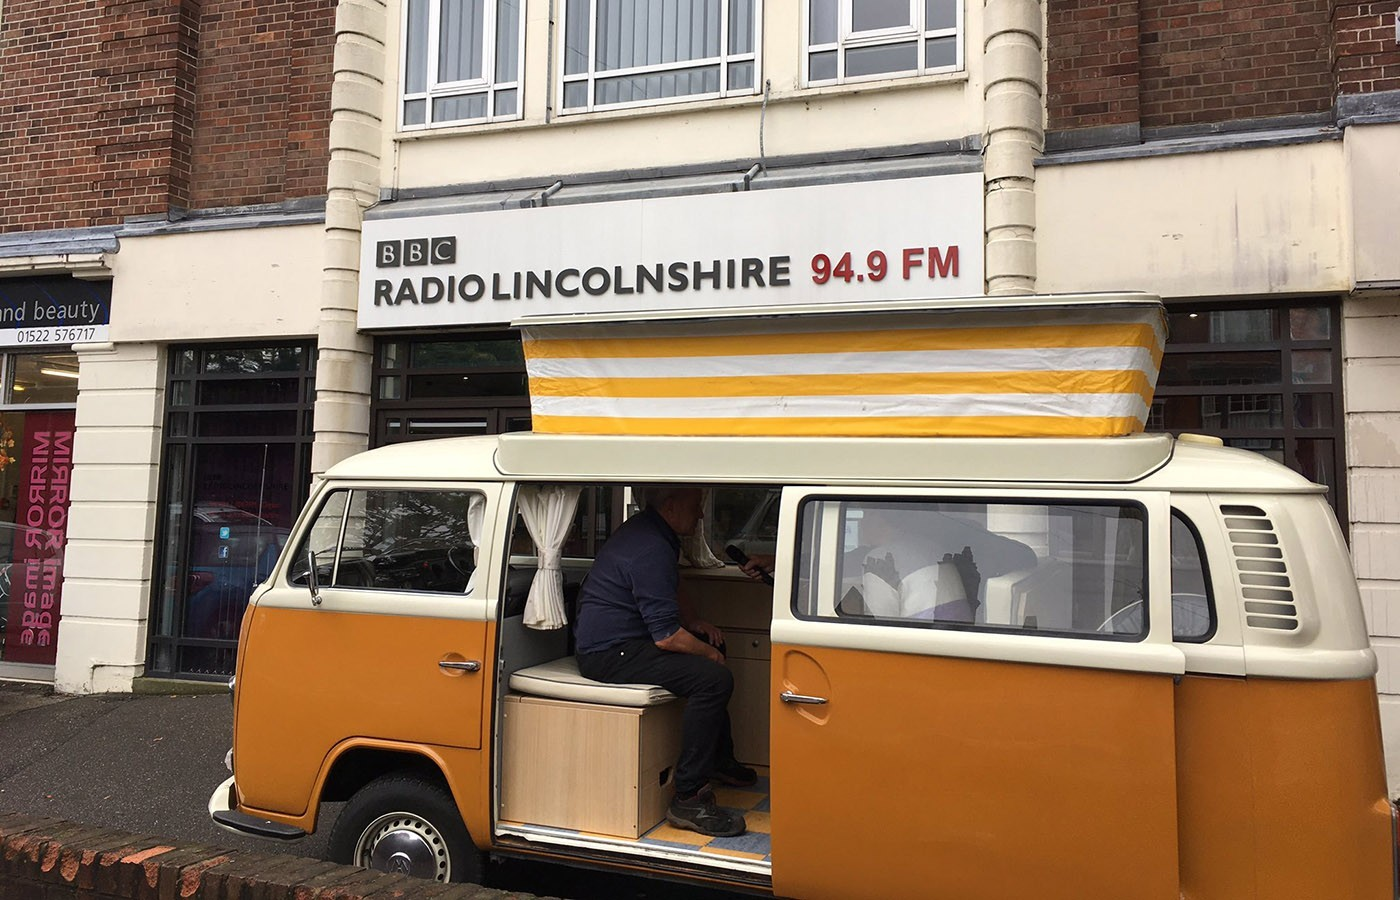 vw campervan at bbc lincolnshire